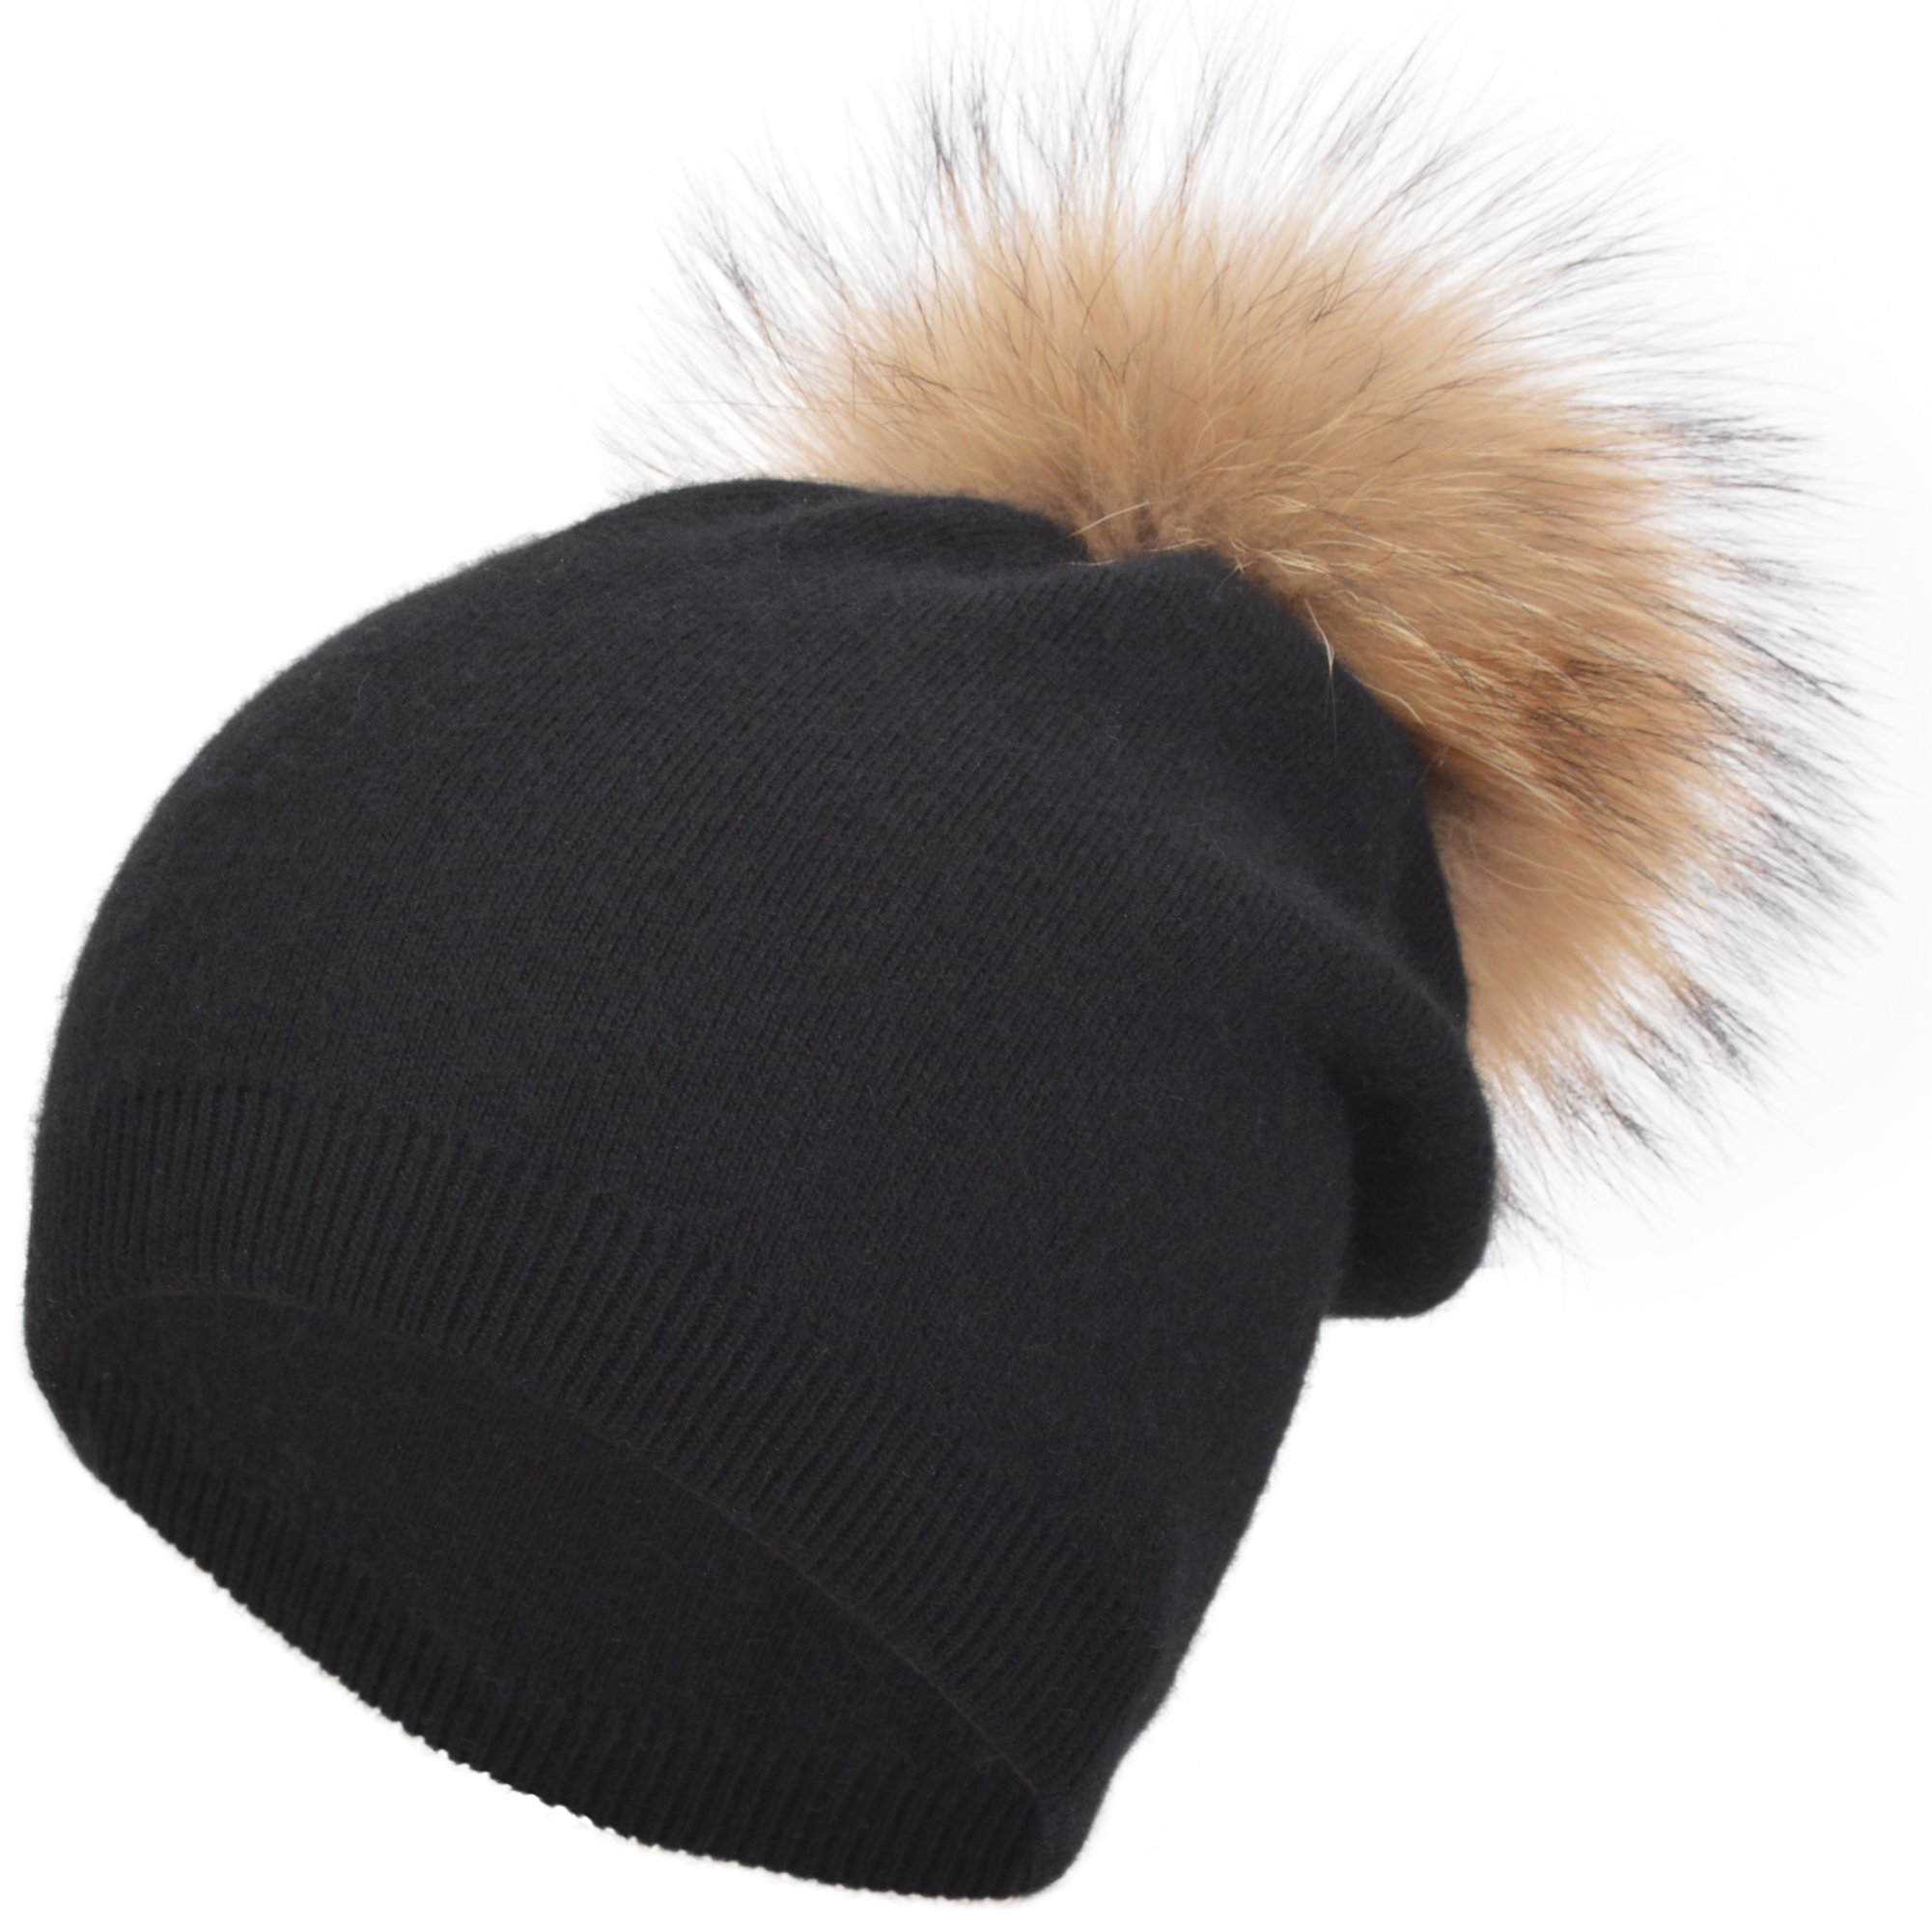 EASTER BARTHE Womens Grils Pure Double-Deck Cashmere Wool Blend Removable Raccoon Fur Pompom Winter Warm Knit Beanie Slouchy Skull Hat Cap (Black)